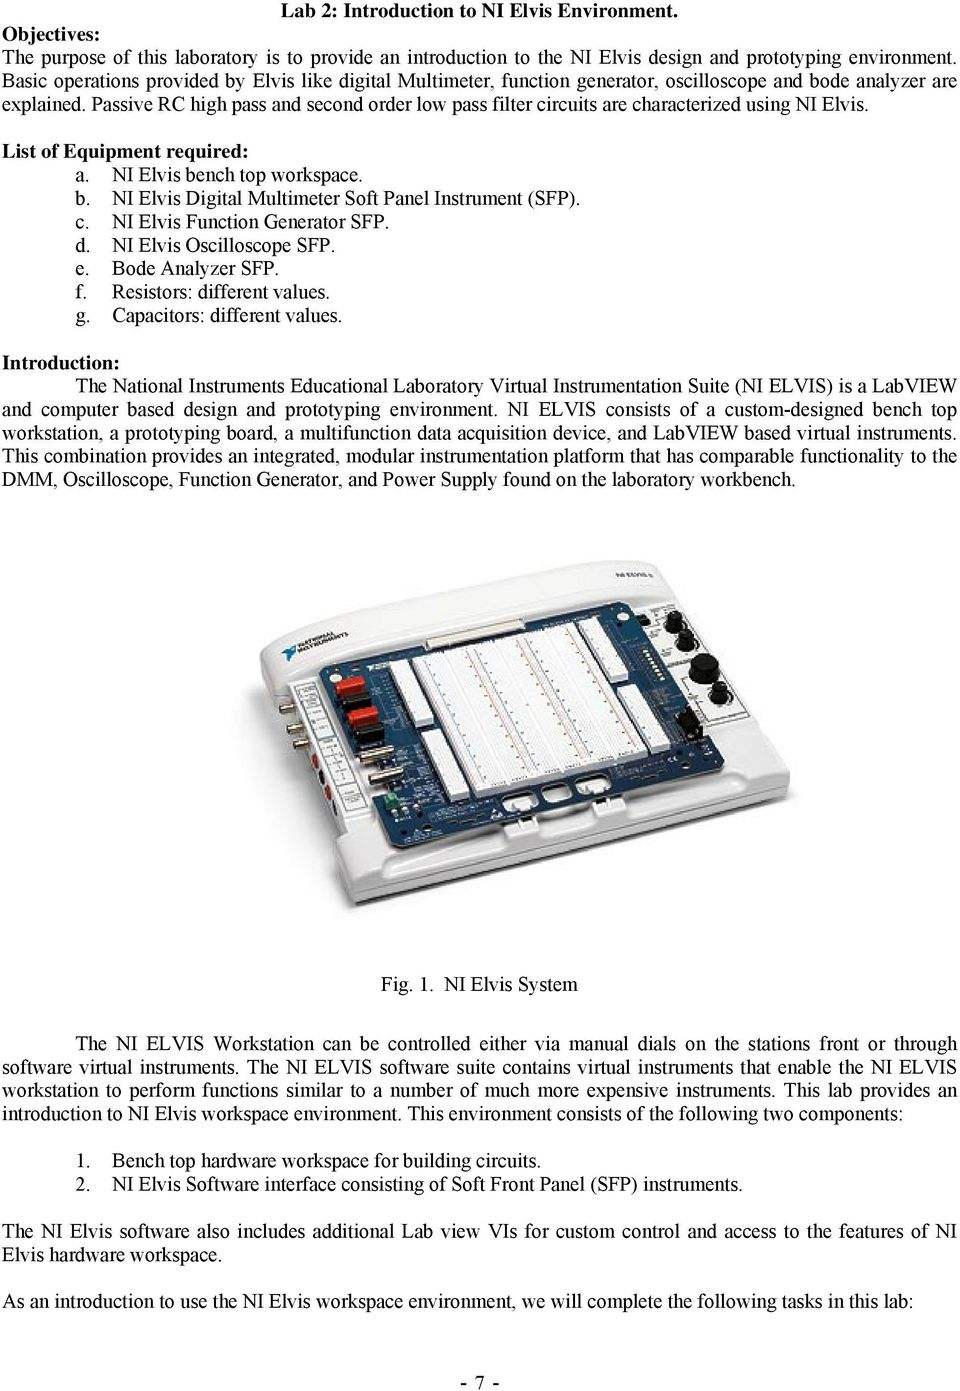 Laboratory Manual Elen 325 Electronics Pdf Electronic Filter Circuits Passive Rc High Pass And Second Order Low Are Characterized Using Ni Elvis